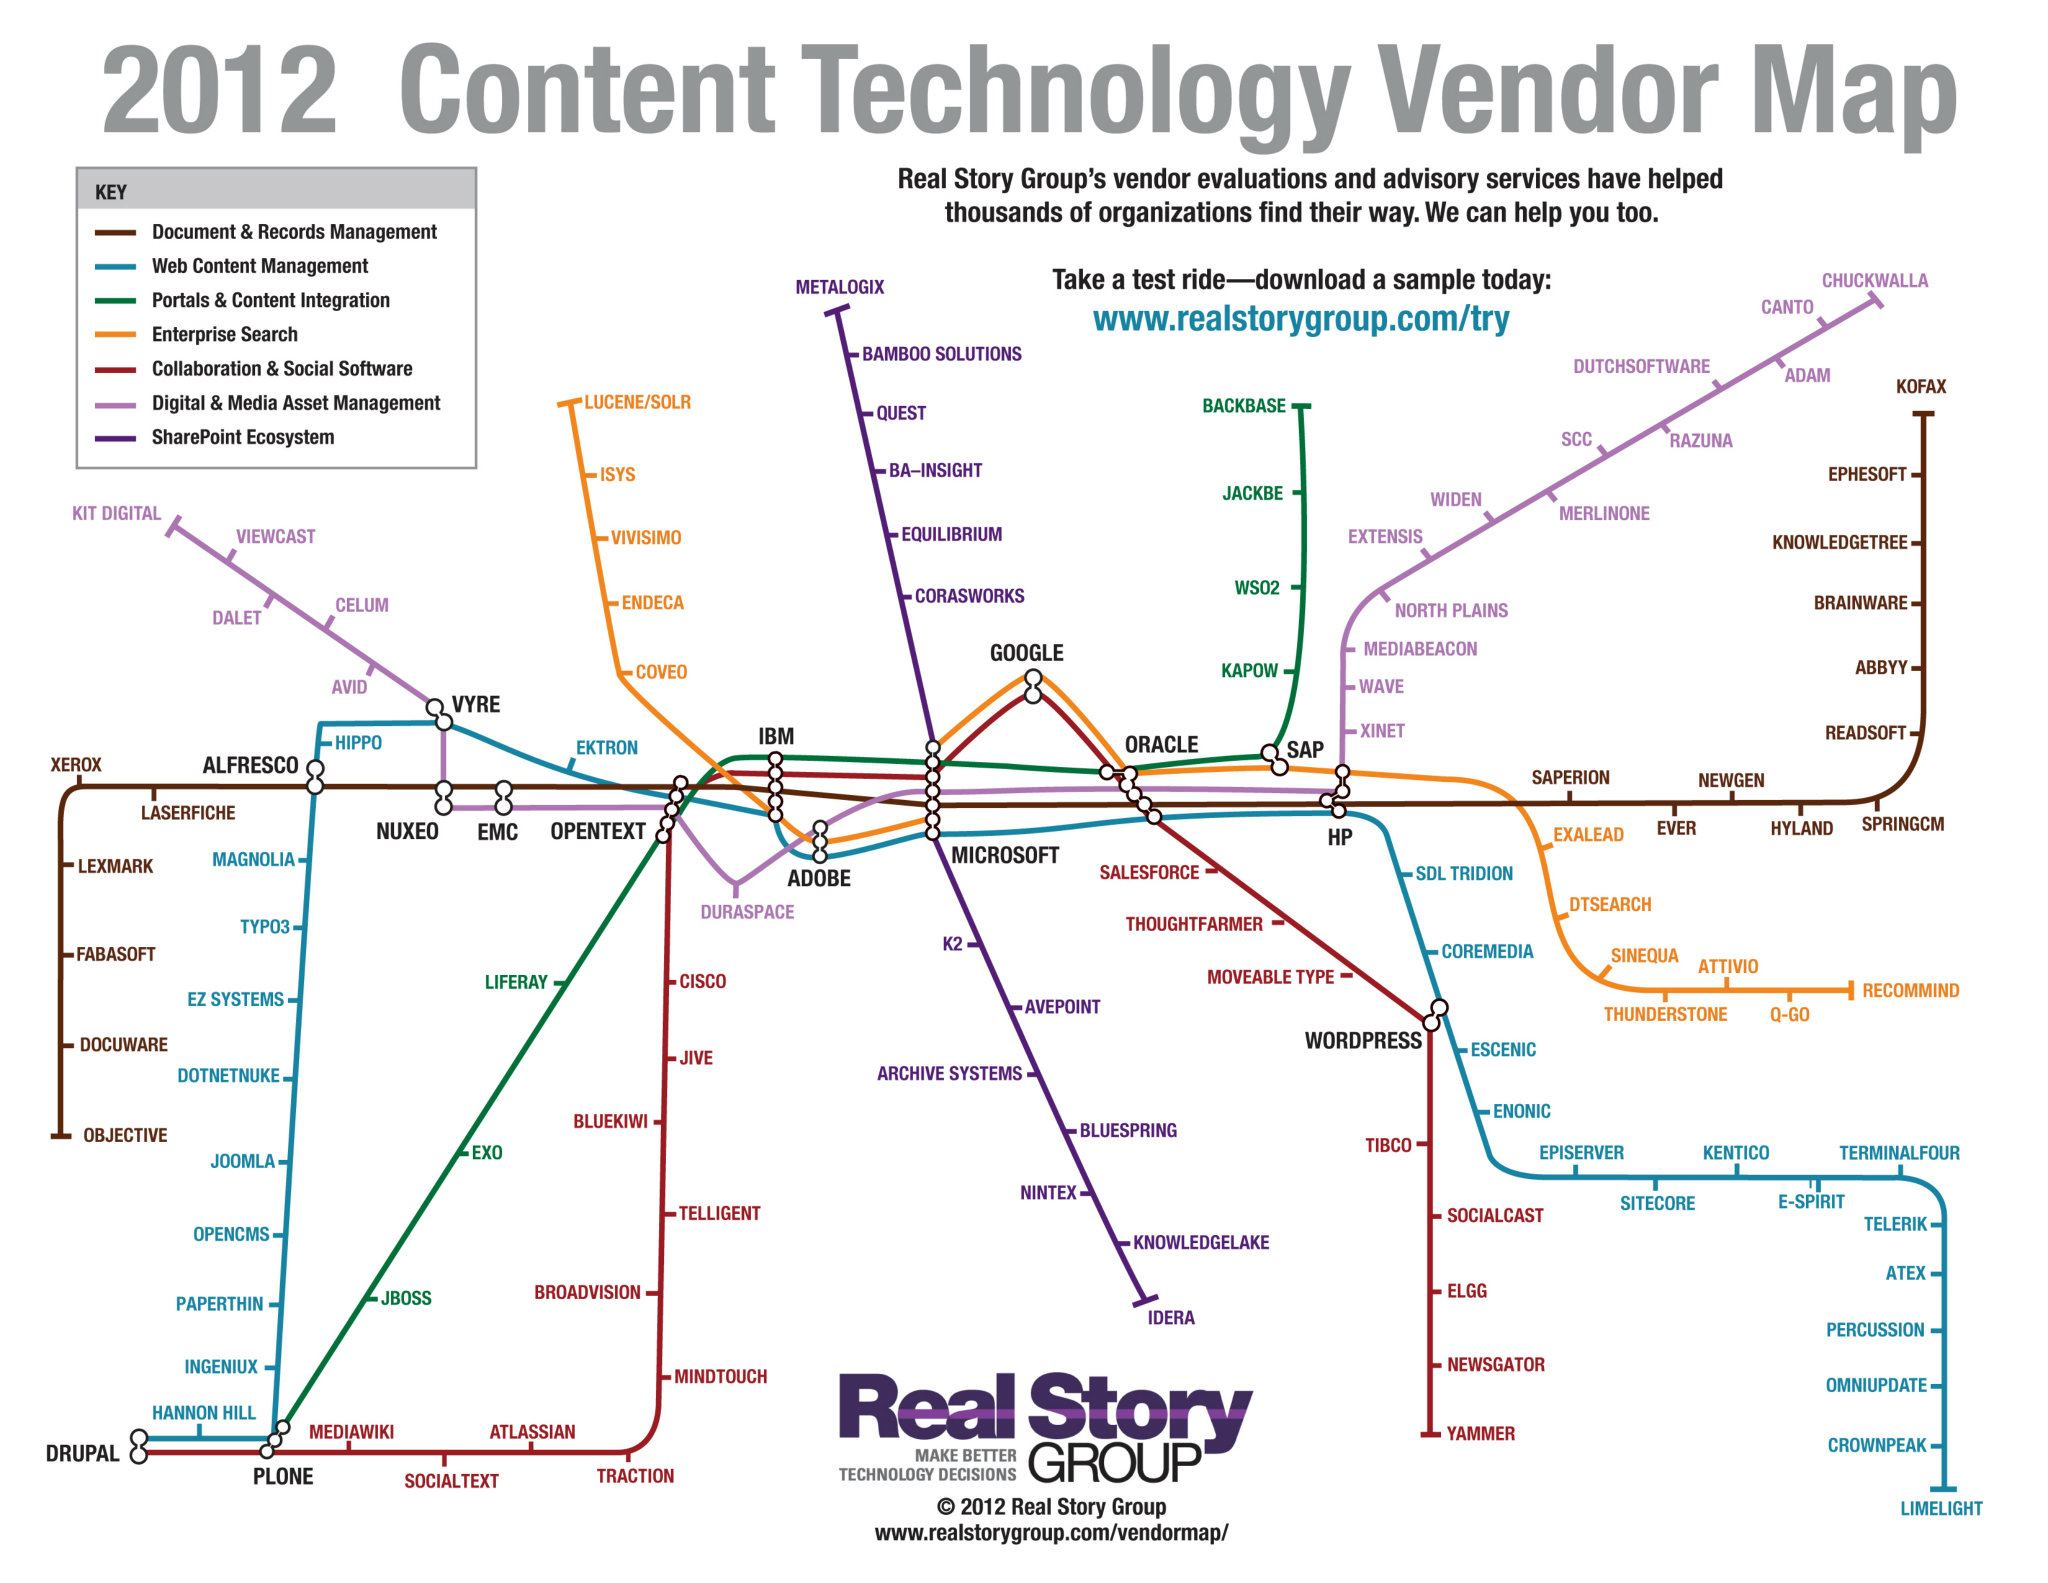 2012 Content Technology Vendor